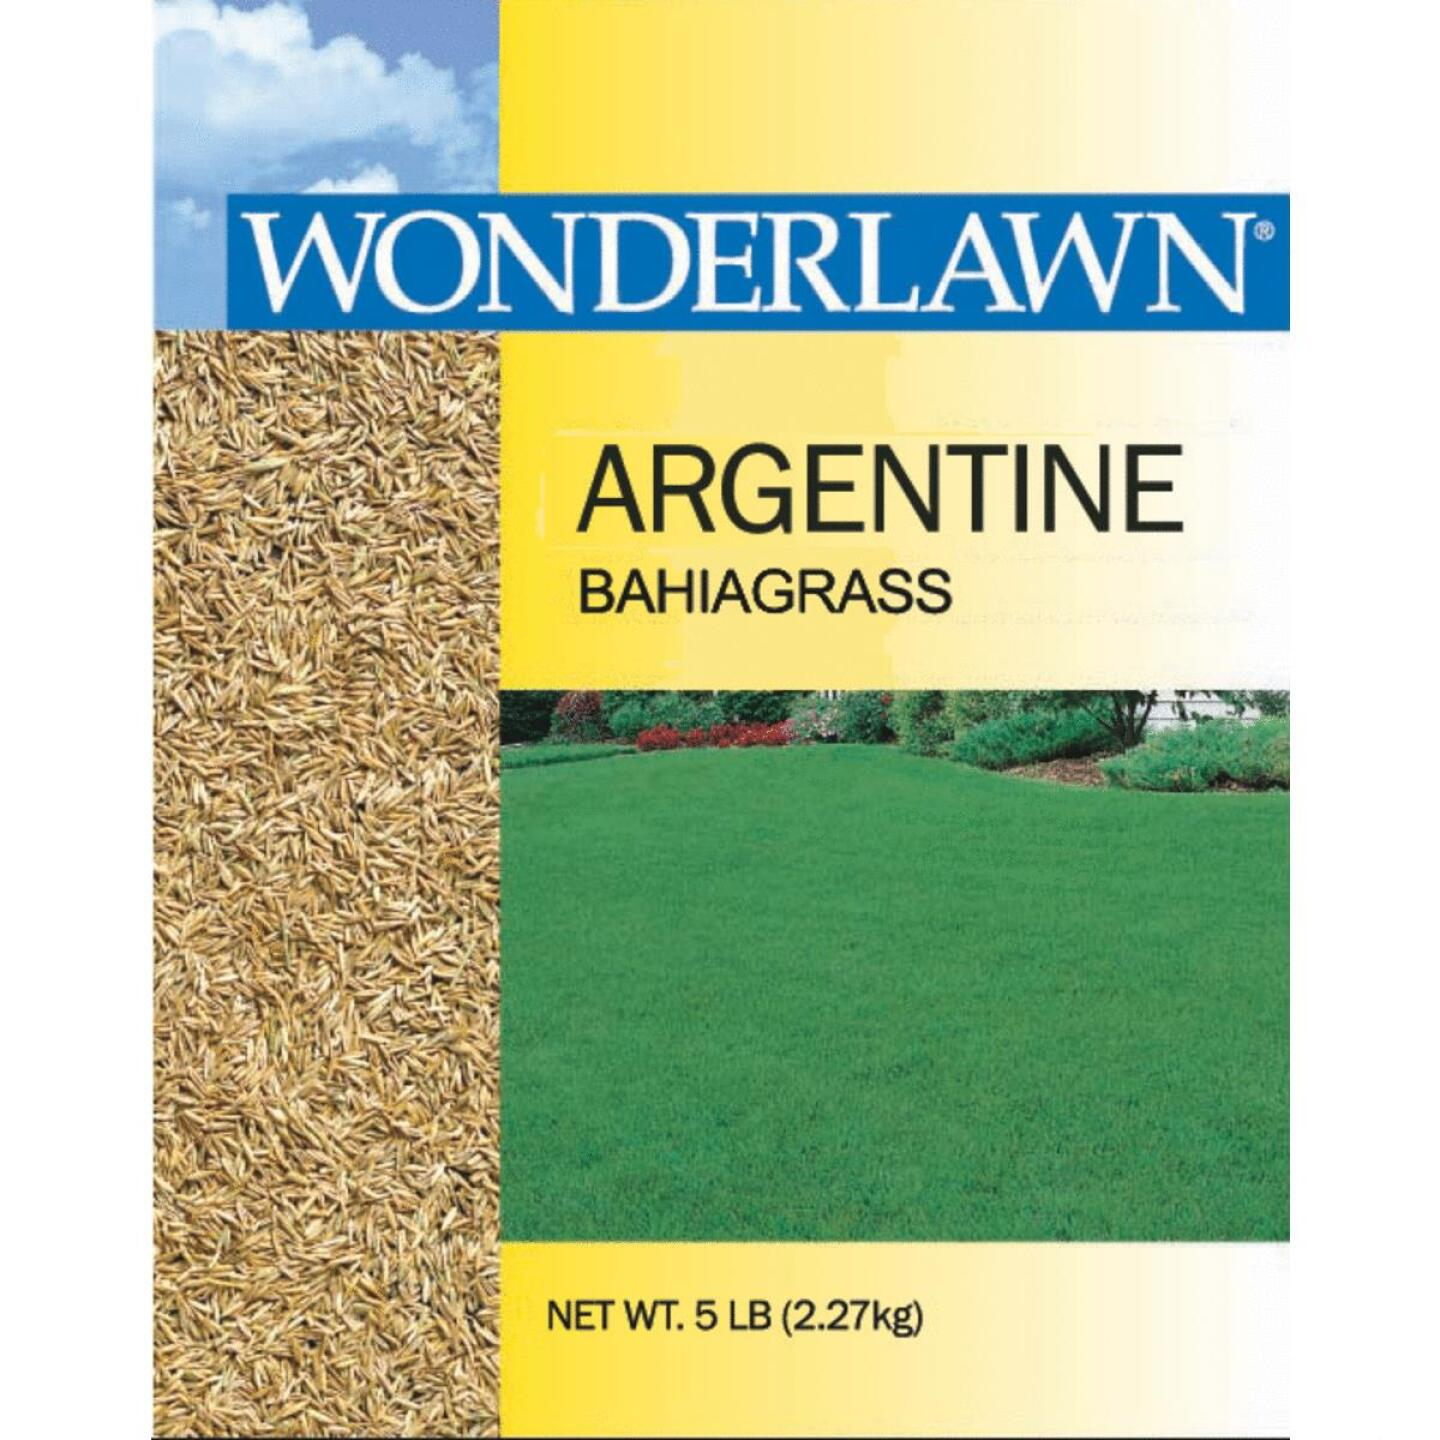 Wonderlawn 5 Lb. 1125 Sq. Ft. Coverage 100% Argentine Bahiagrass Grass Seed Image 1